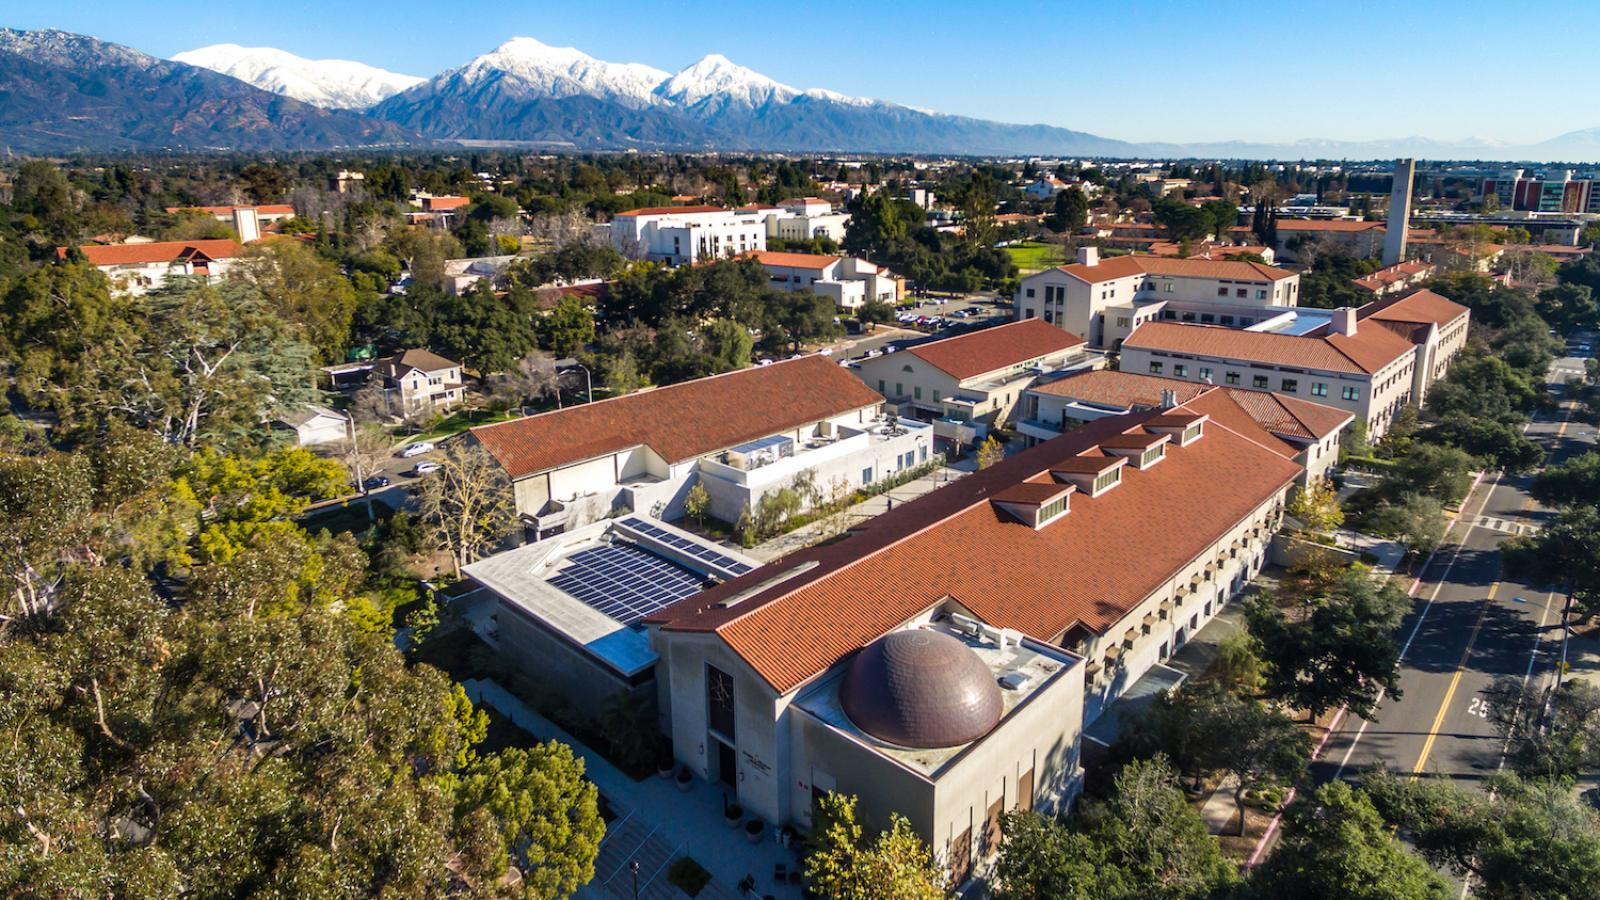 Drone view of roof of Millikan Laboratory with snowy mountains in the background.